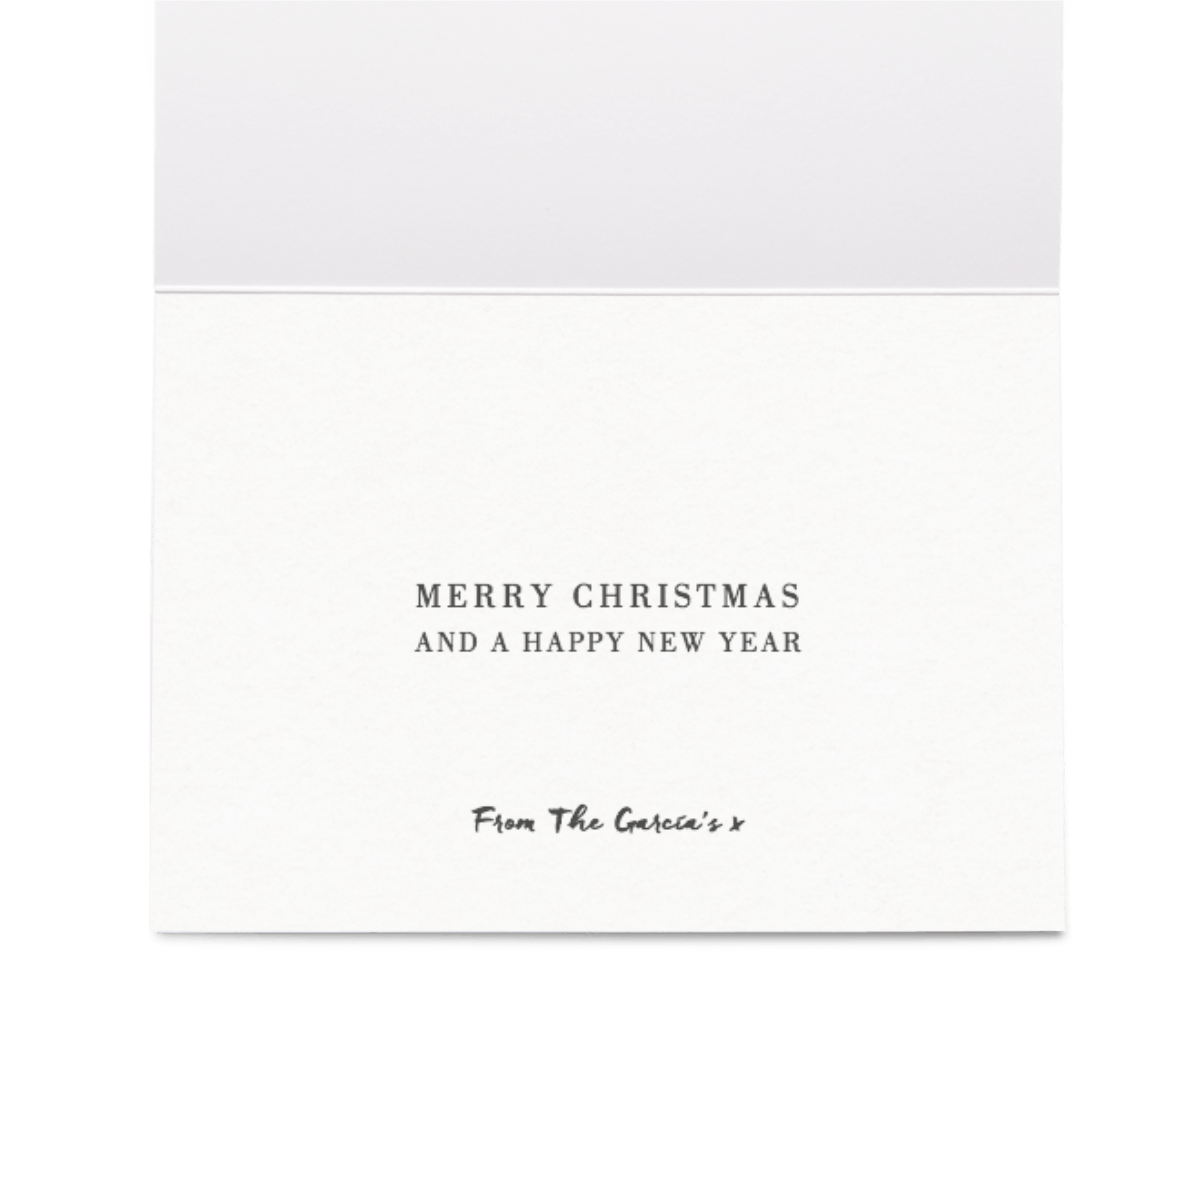 Https%3a%2f%2fwww.papier.com%2fproduct image%2f10469%2f20%2fchristmas scene 2668 inside 1542213731.png?ixlib=rb 1.1